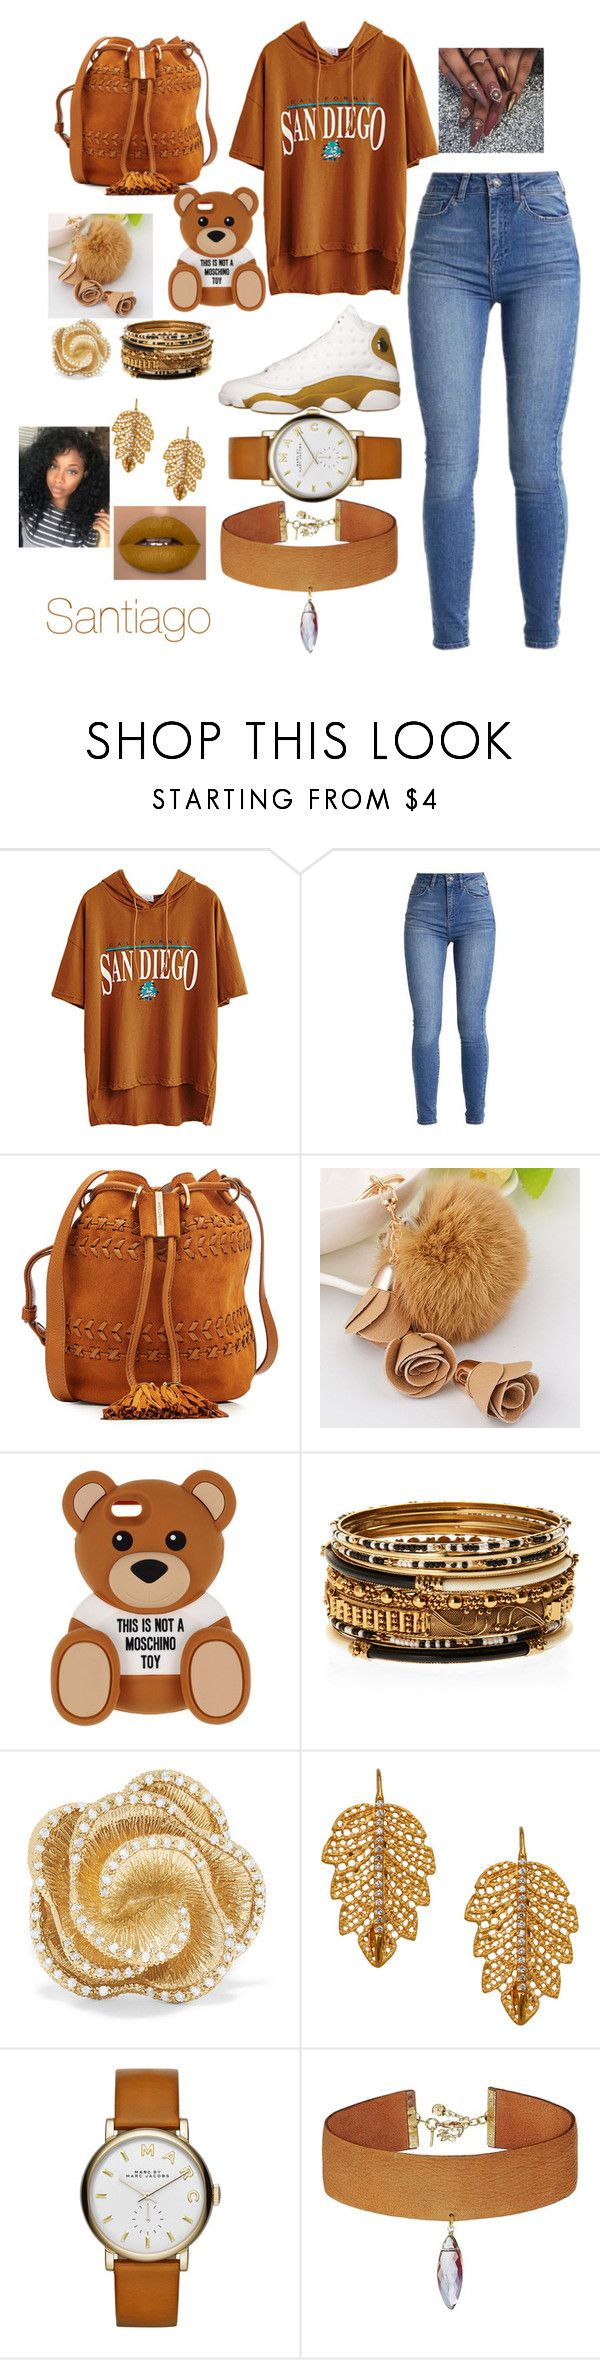 """Santiago here I come"" by trintrinforever27 ❤ liked on Polyvore featuring See by Chloé, Moschino, Amrita Singh, Effy Jewelry, Marika, Marc by Marc Jacobs and Vanessa Mooney"